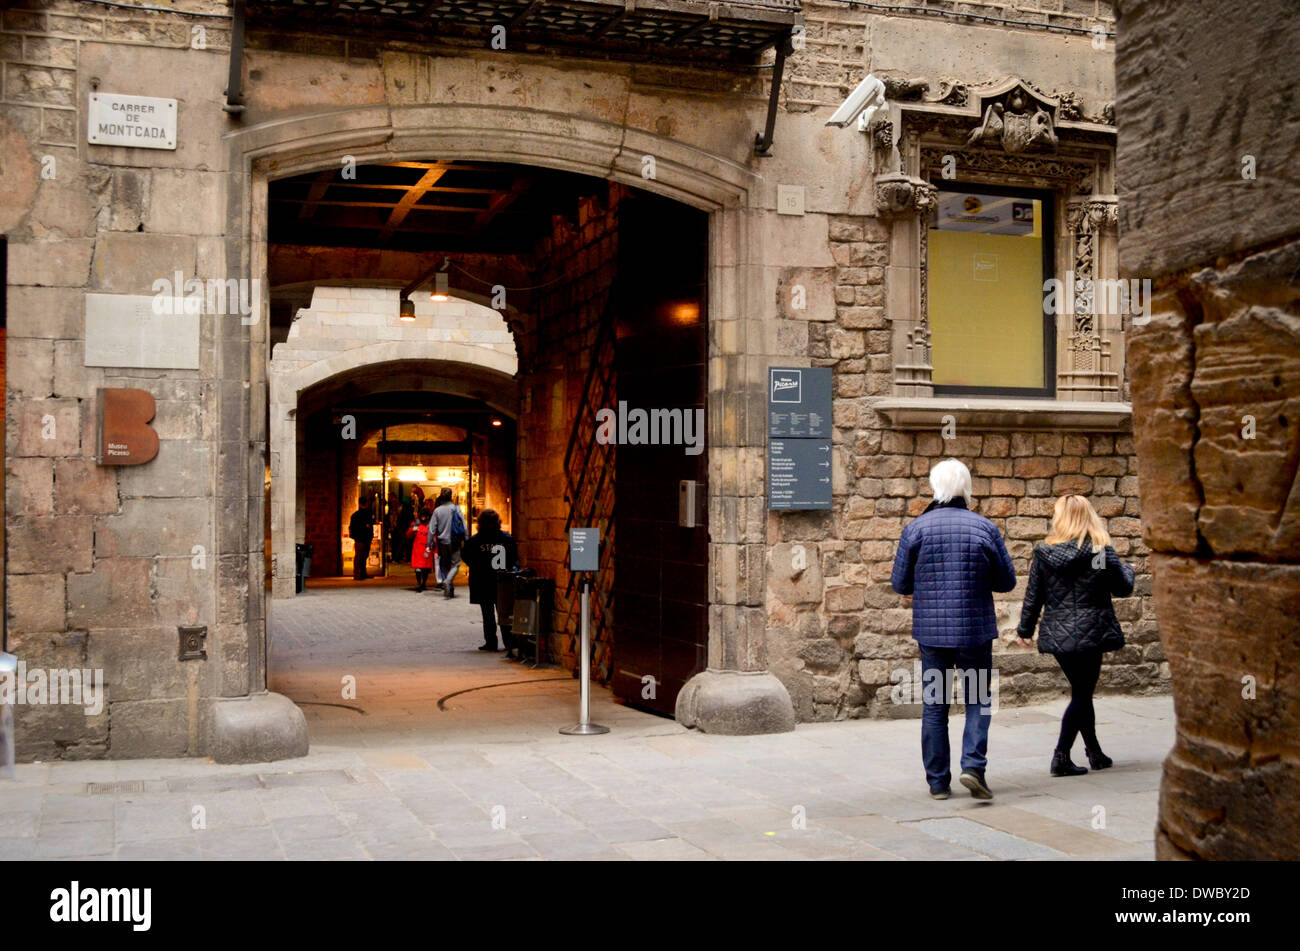 Picasso Museum, Barcelona, Catalonia, Spain. - Stock Image